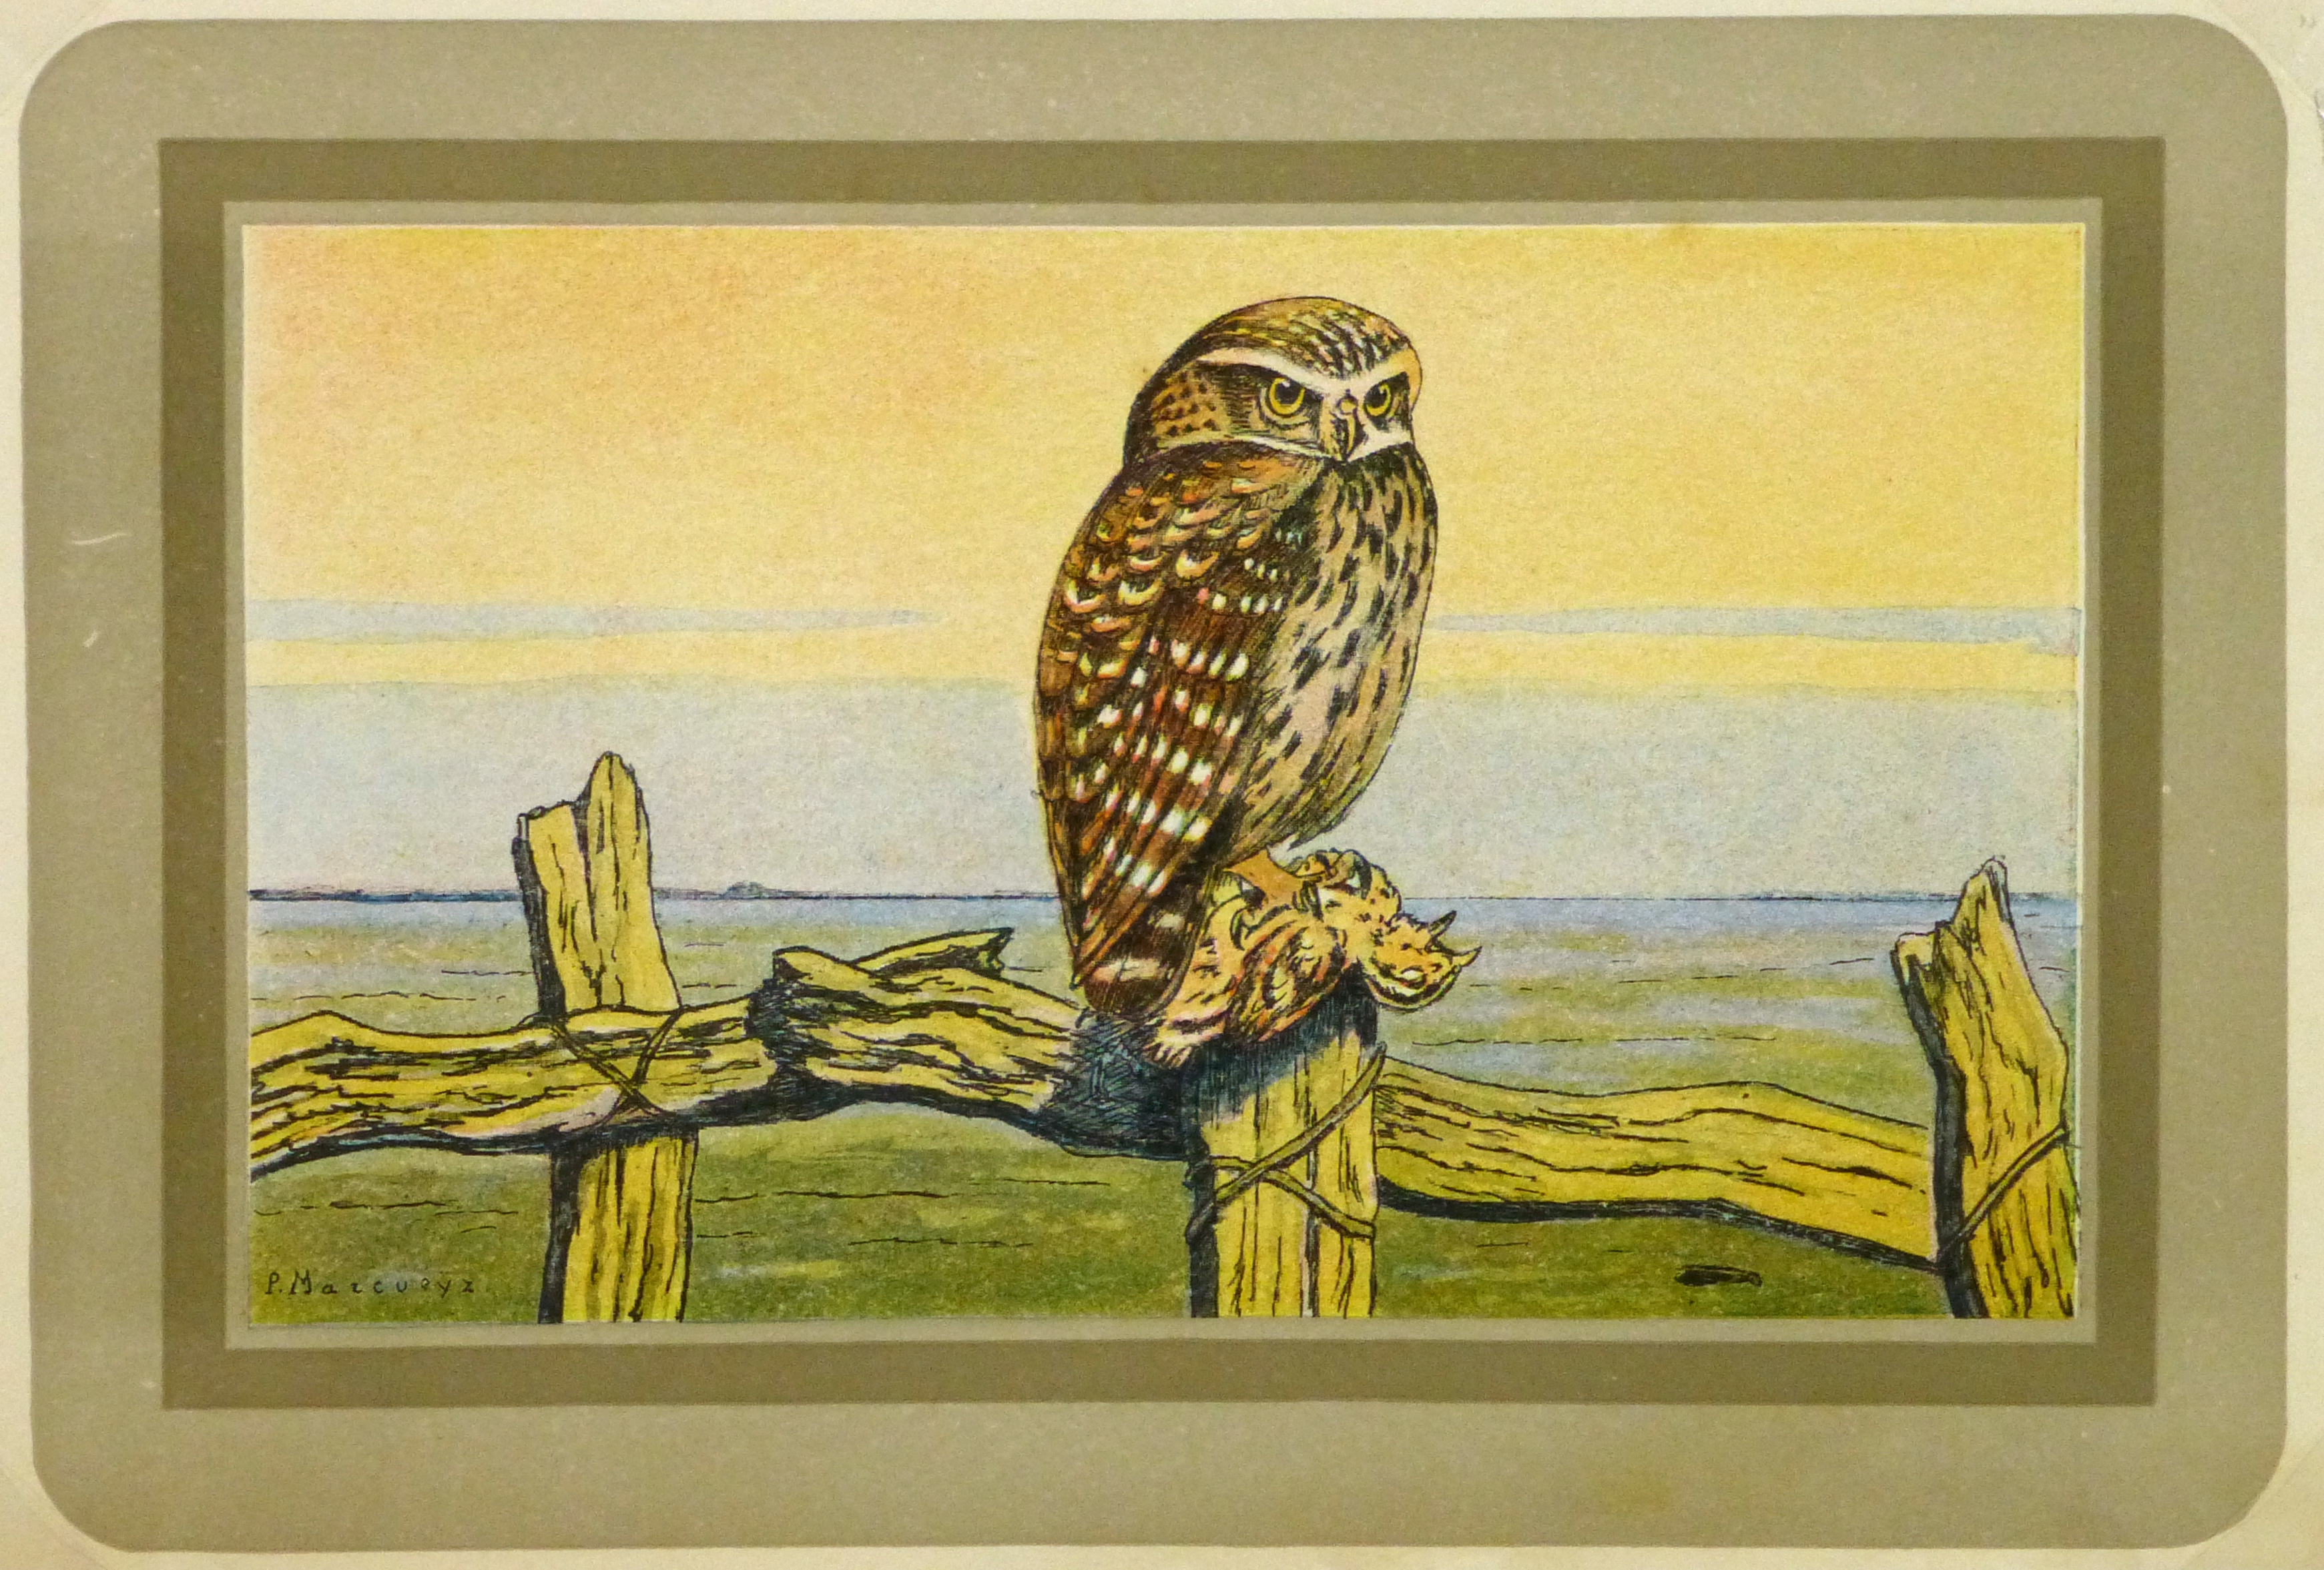 Burrowing Owl Print, Circa 1920-main-9213K